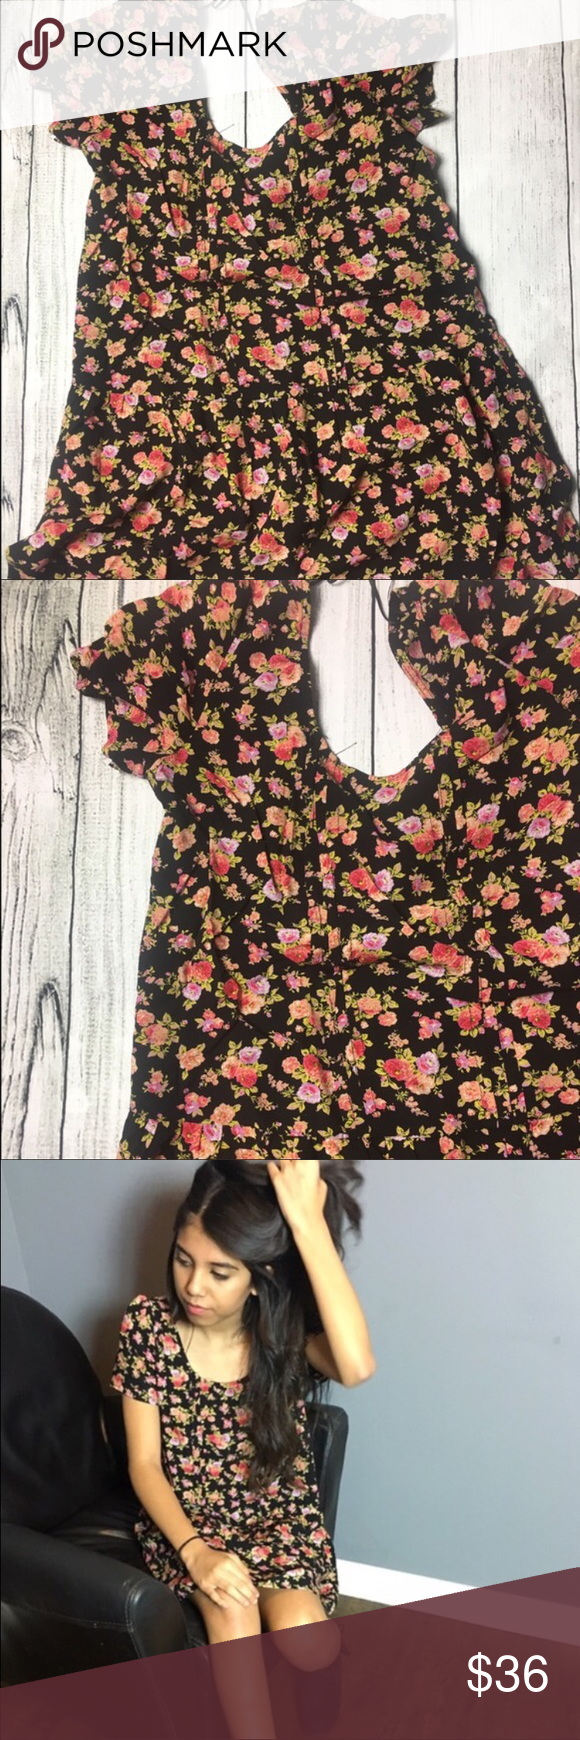 "🆕Beautiful flower print dress ❤ This very cute midi black dress with flower print all over. Very cute with some tights or leggings for this cold weather or with flip flops on those warm and sunny days! Made out of 100% rayon materials. MEASUREMENTS- length: 31"" width- 17.5"" ❤️️ Dorimas closet Dresses Mini"